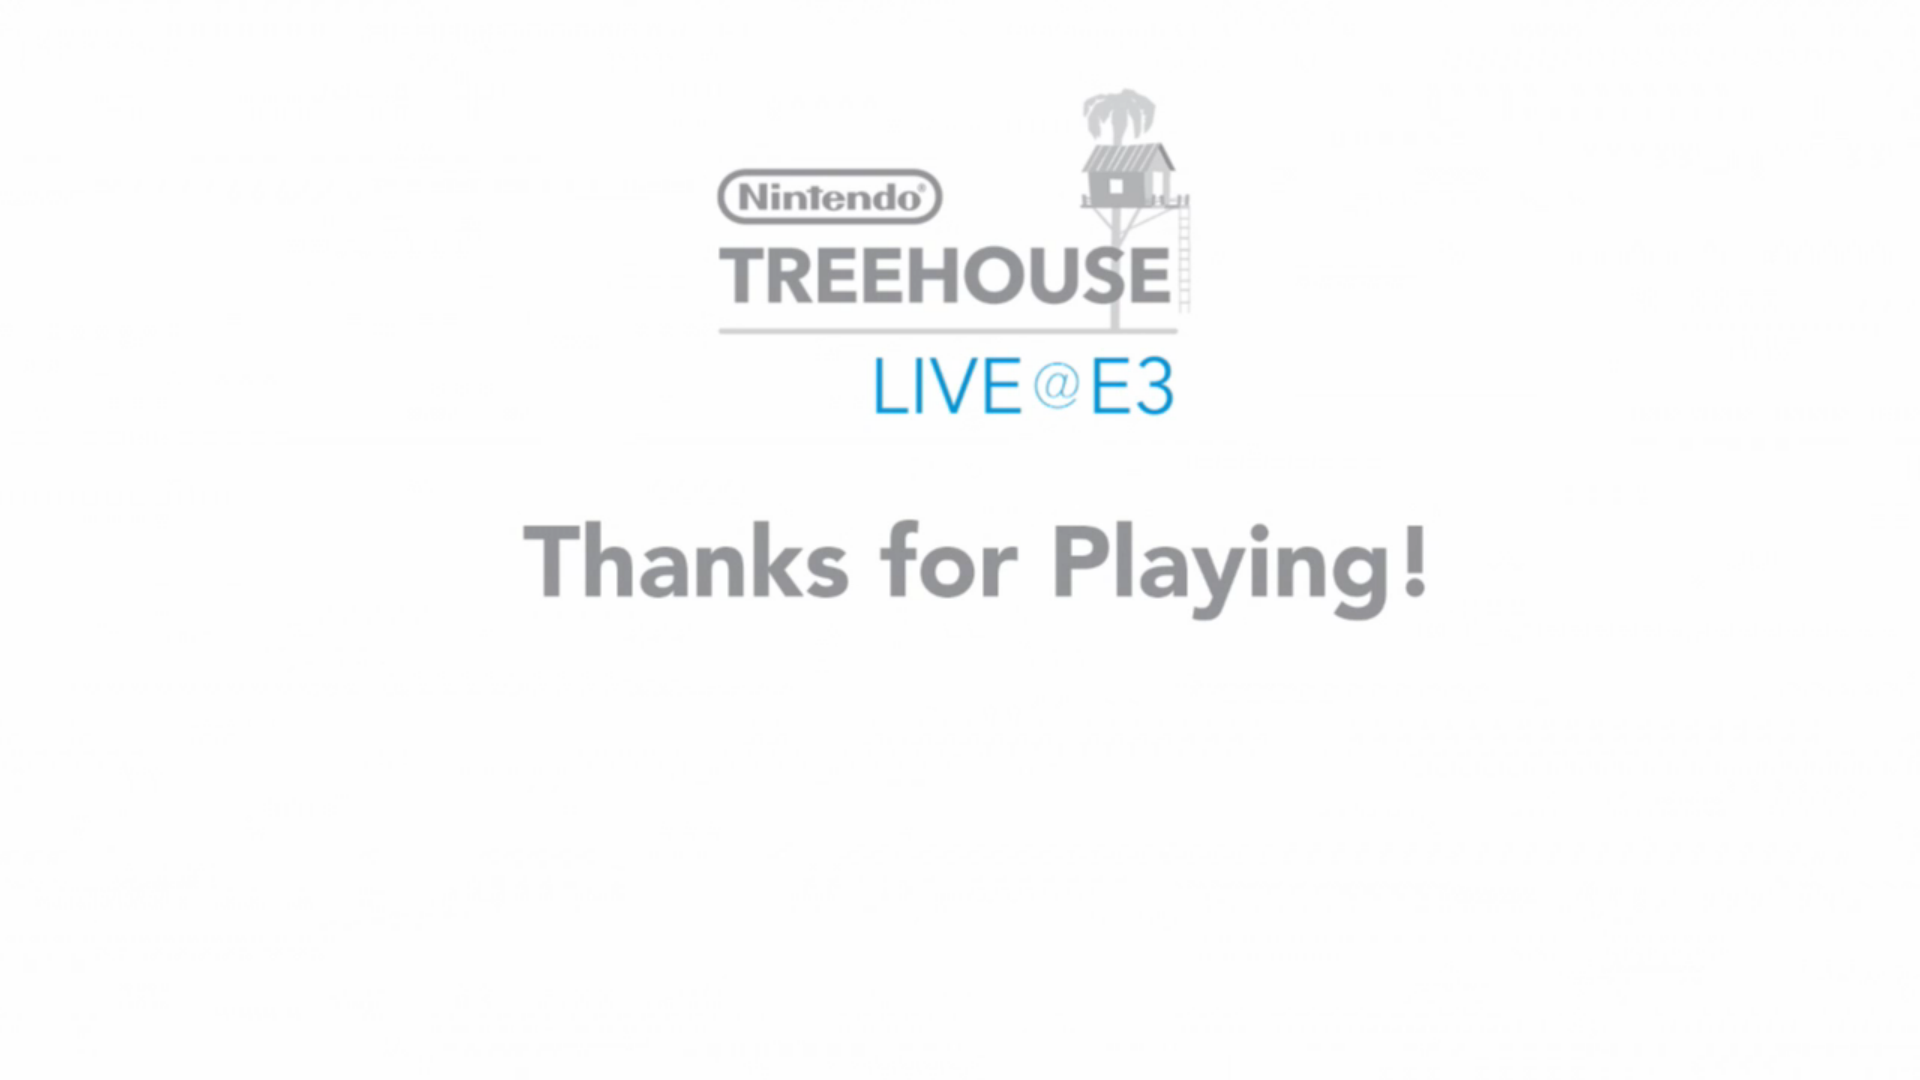 Video: Nintendo Treehouse Live at E3 2014 Day 3 Compilation